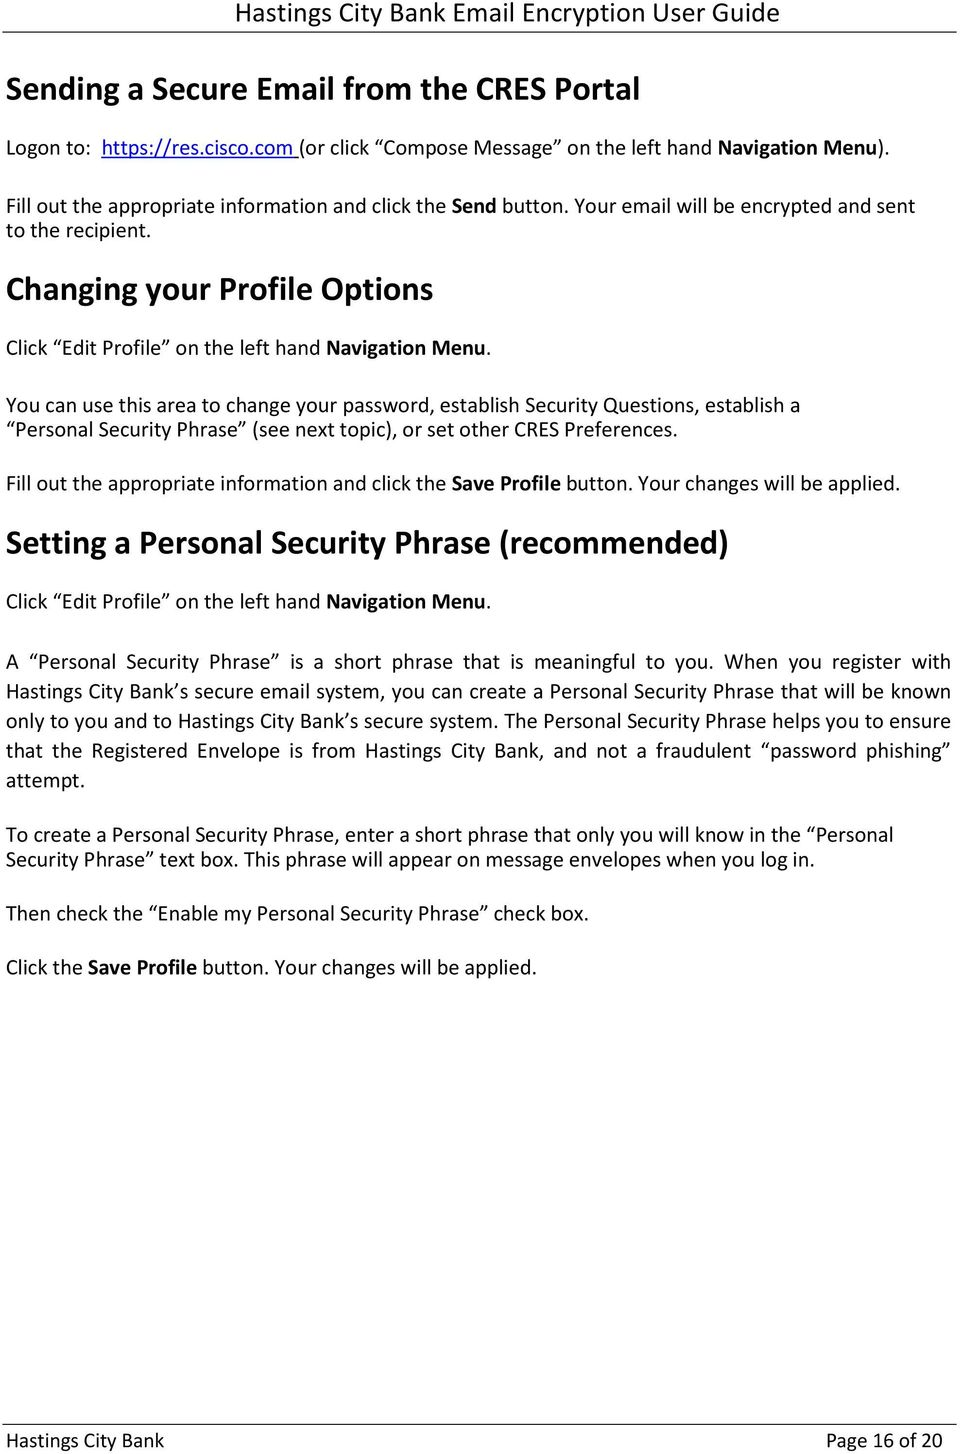 You can use this area to change your password, establish Security Questions, establish a Personal Security Phrase (see next topic), or set other CRES Preferences.